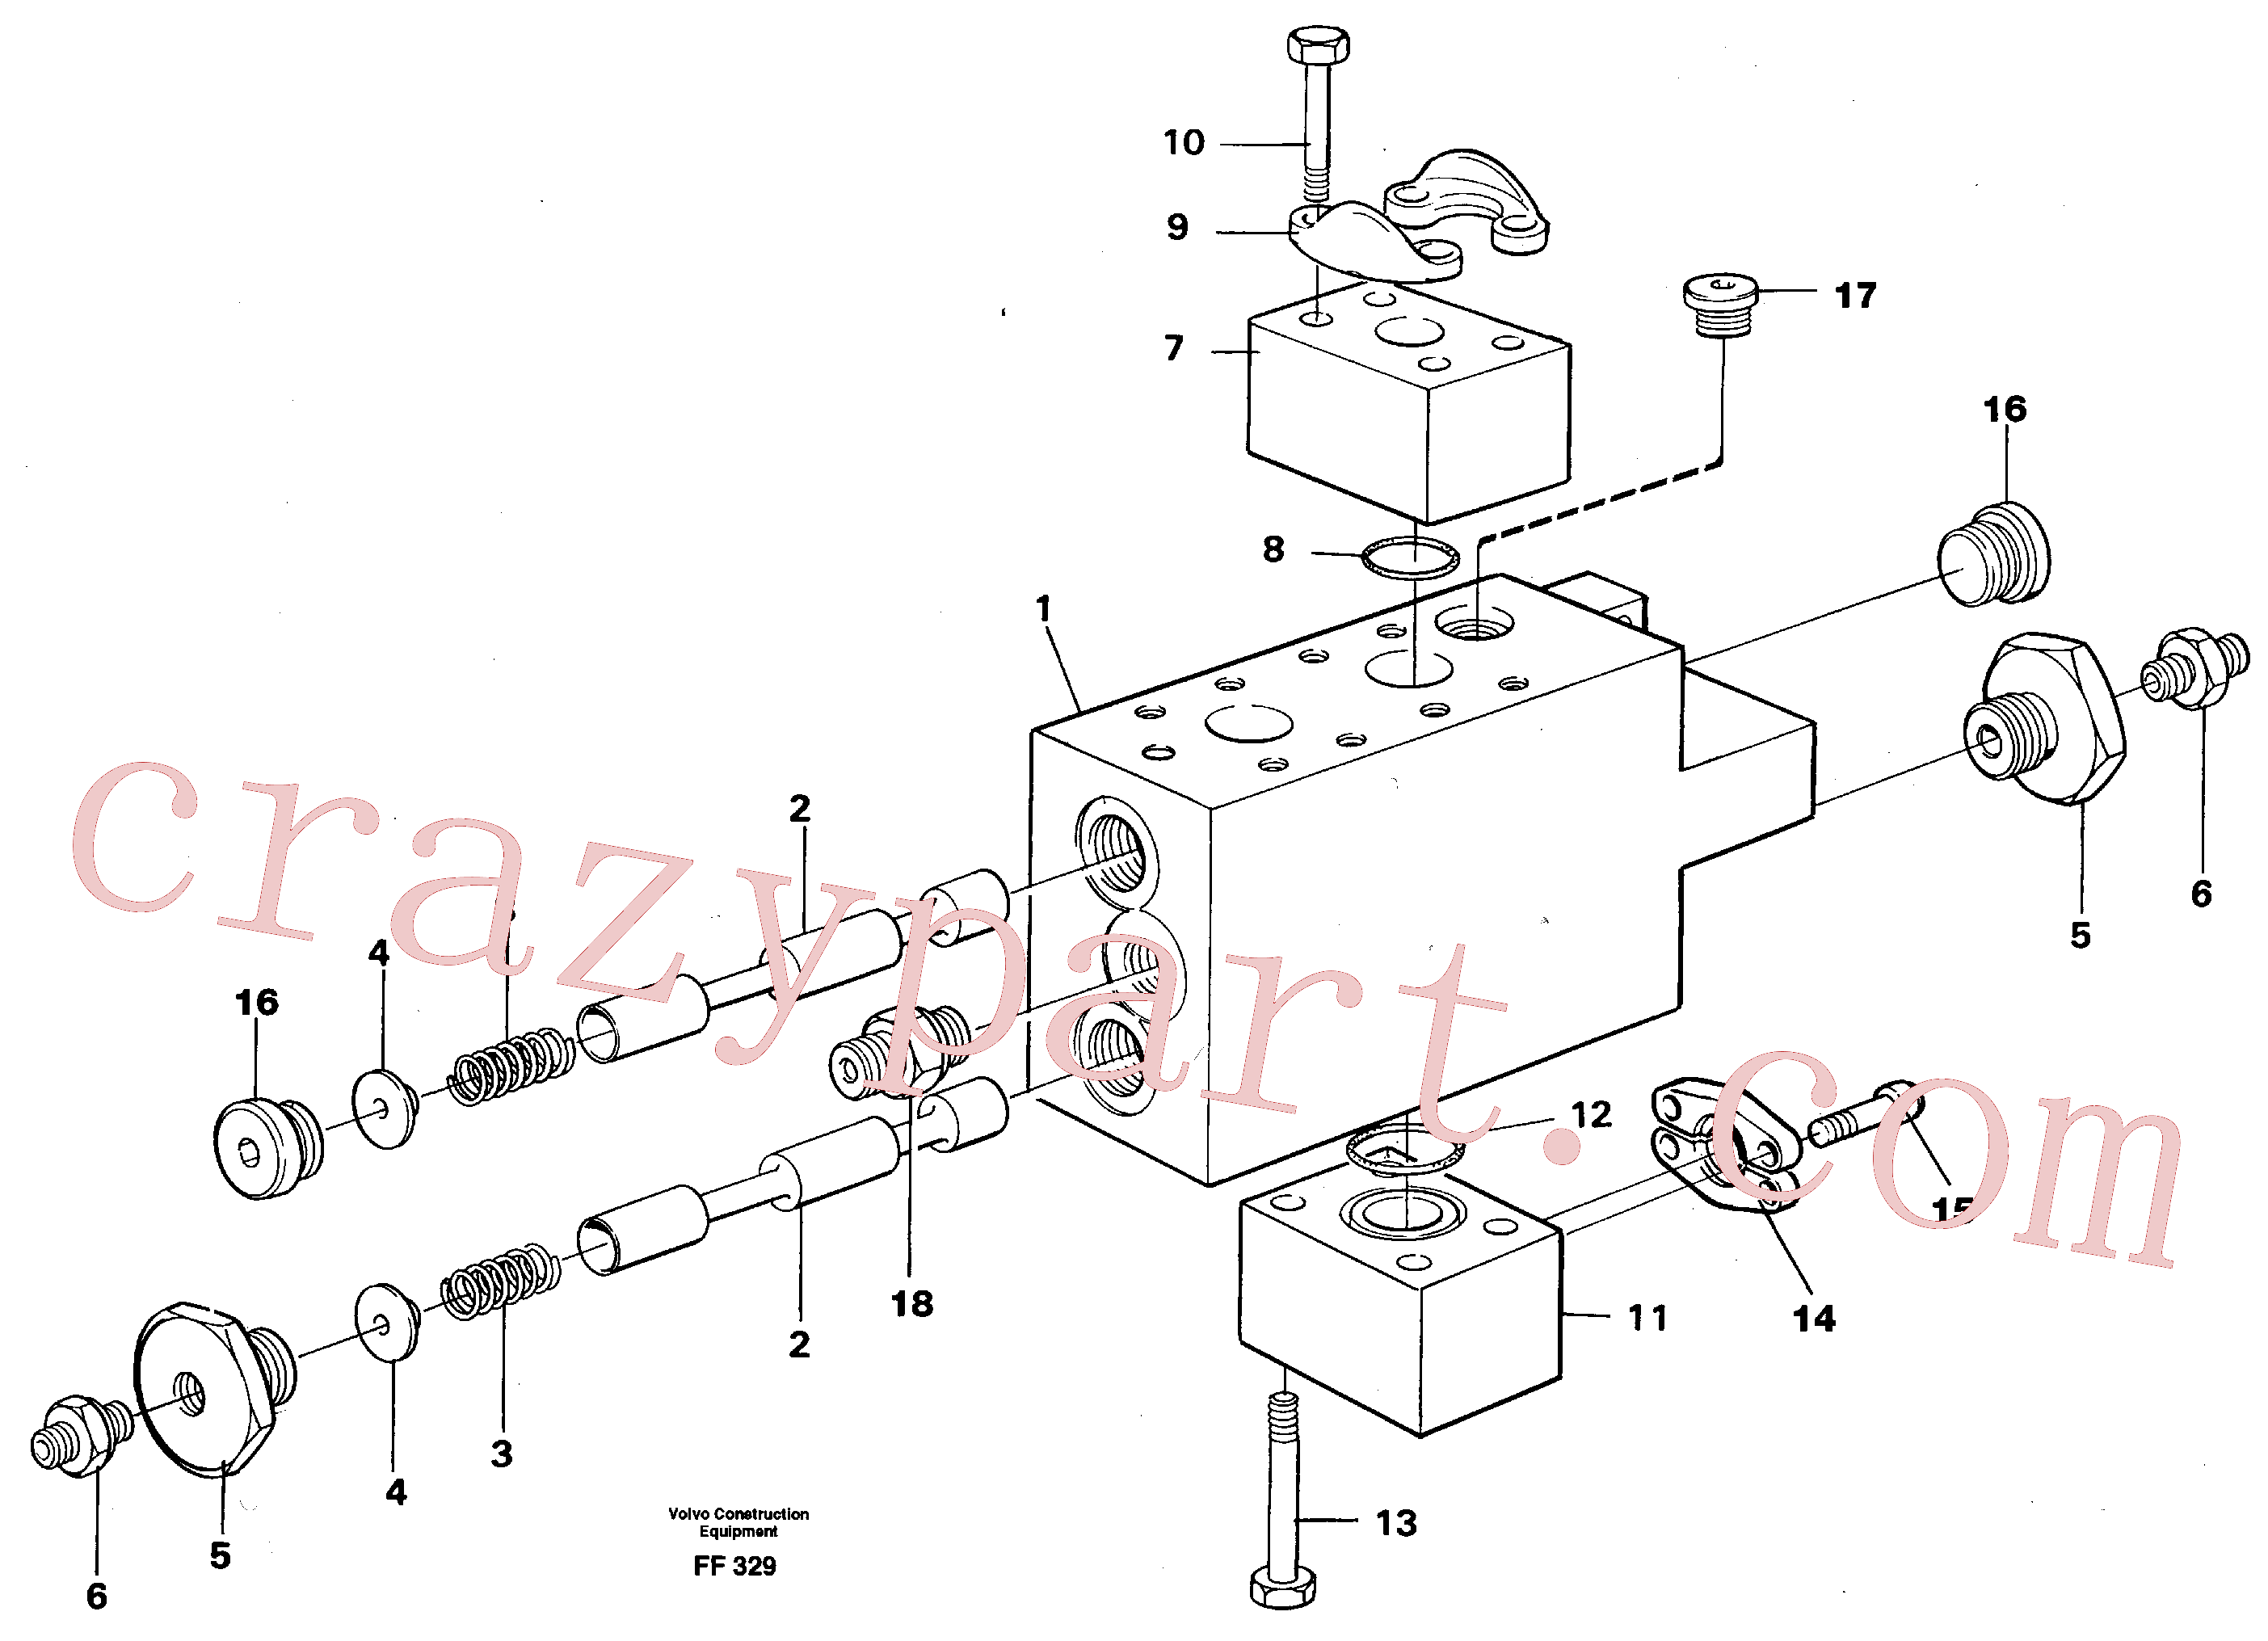 VOE13970984 for Volvo Operating valve(FF329 assembly)